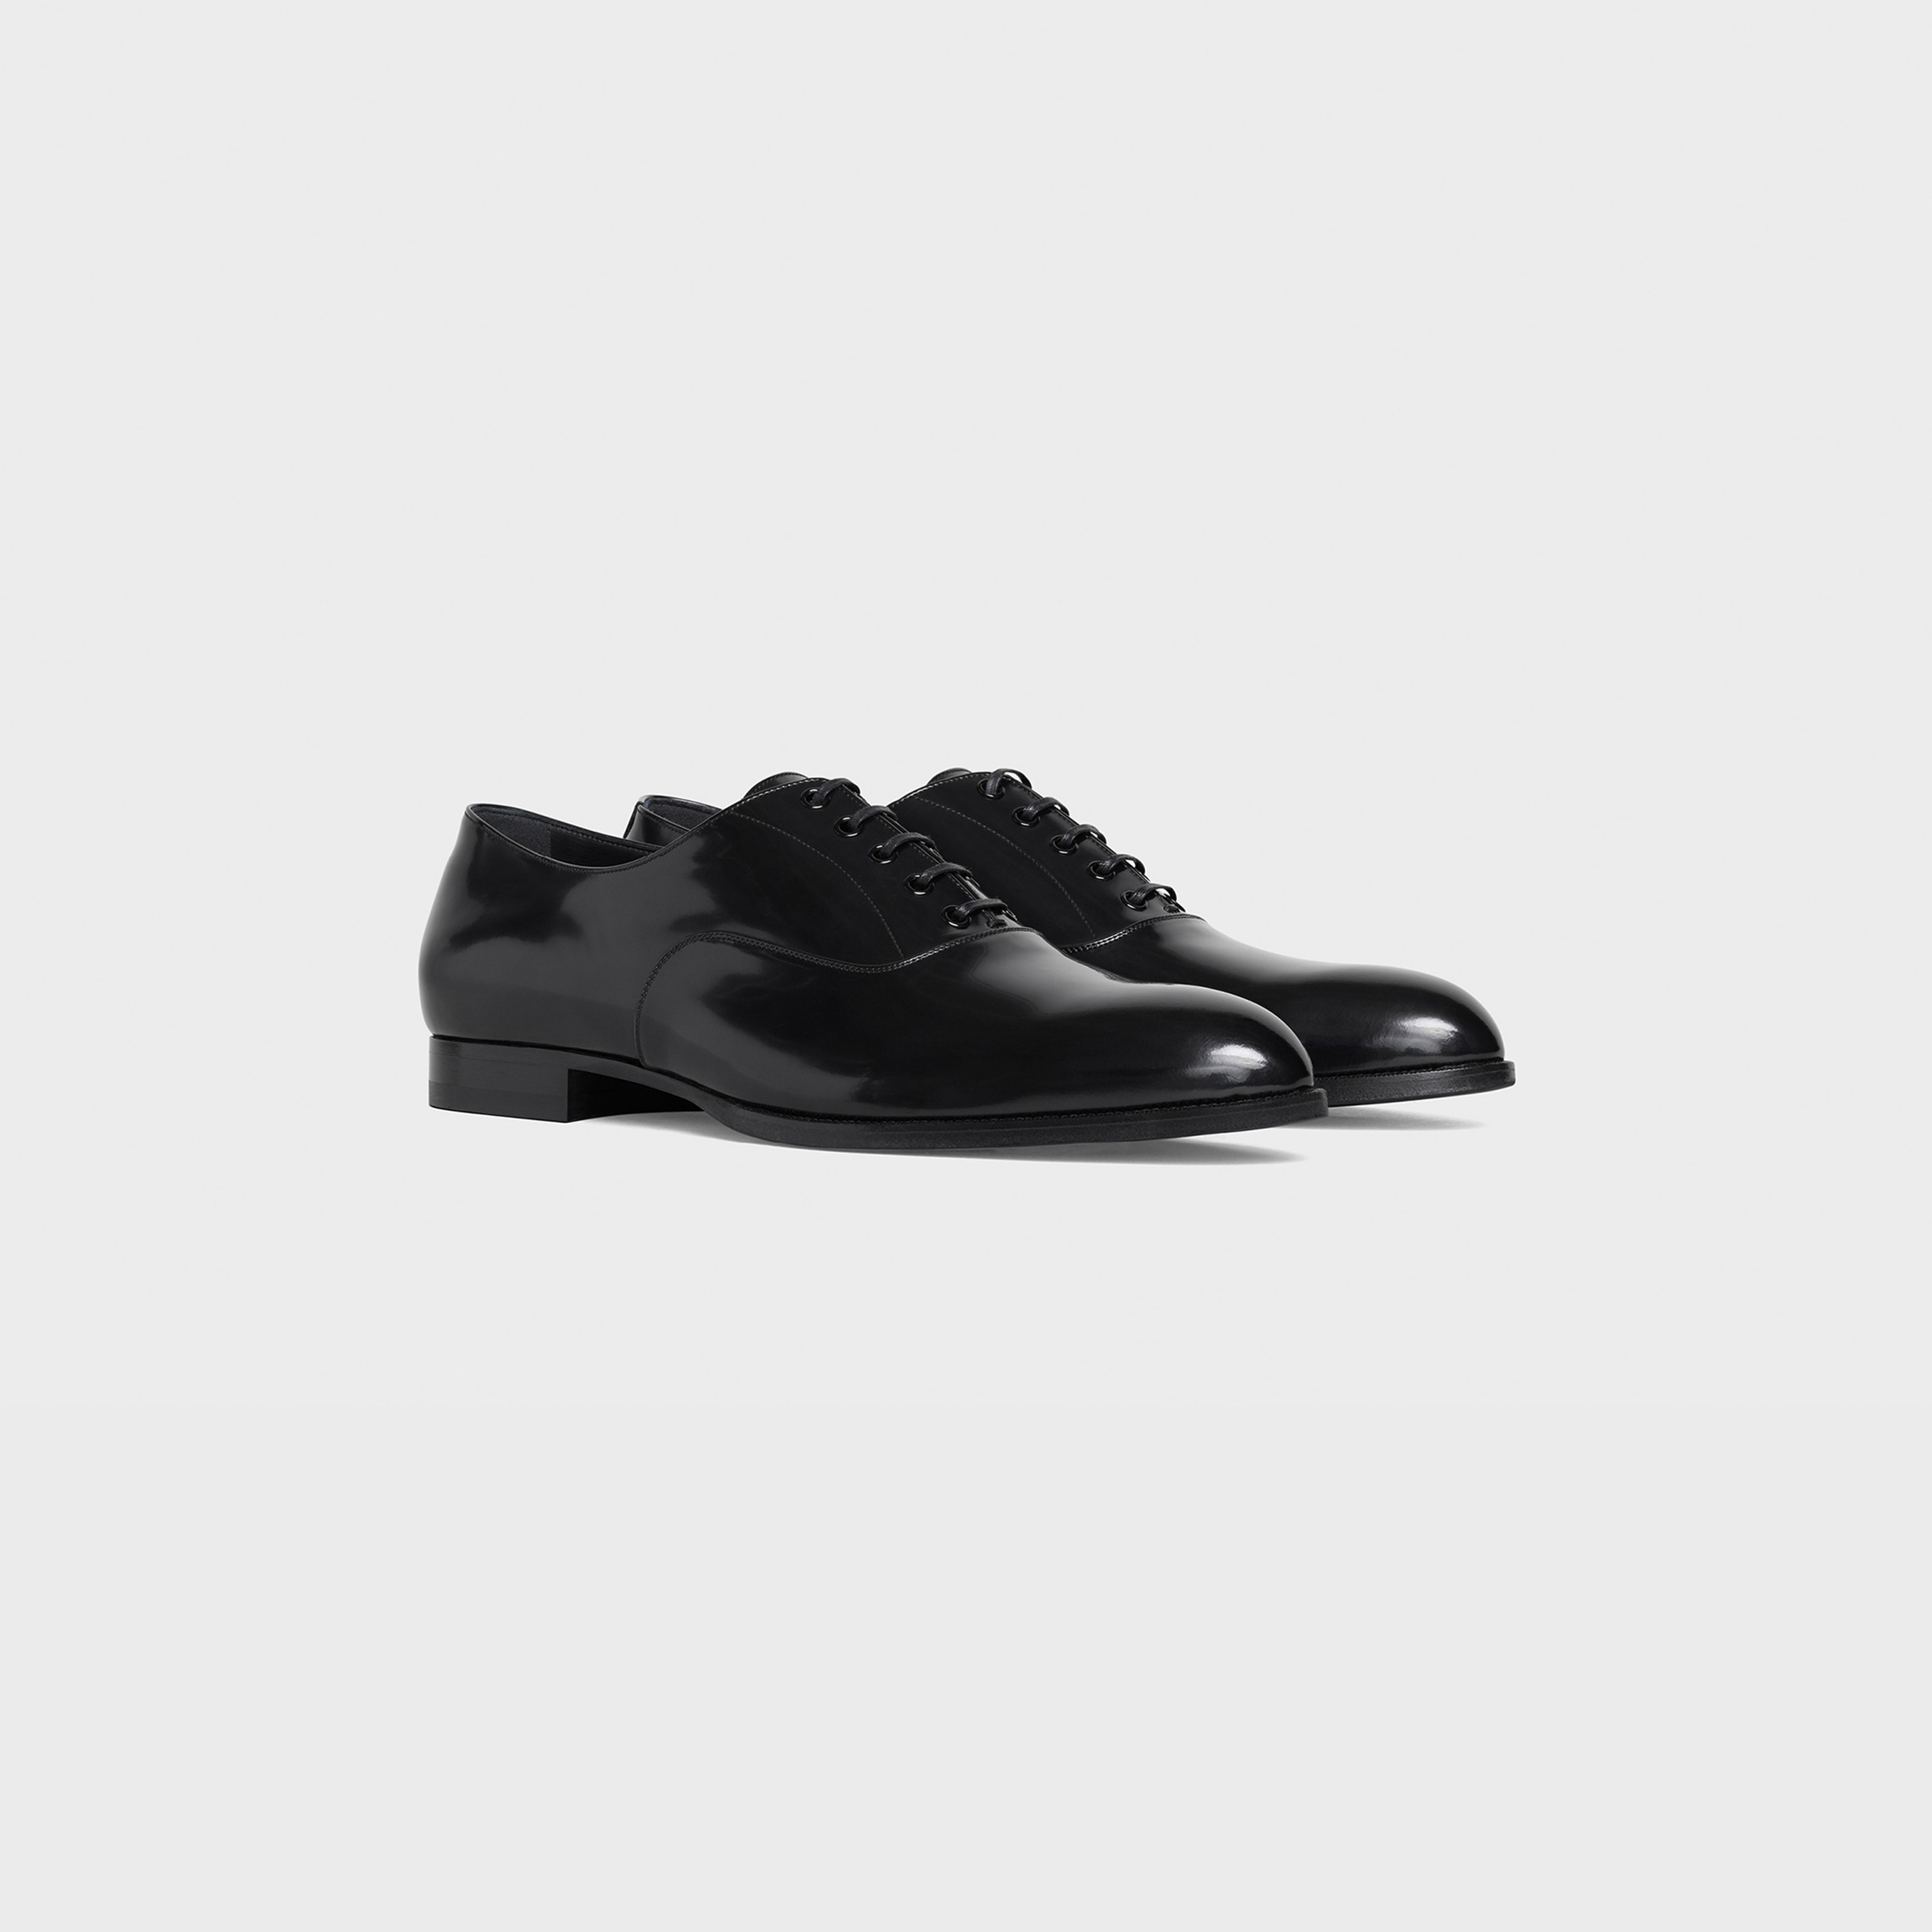 CELINE DRUGSTORE Oxford in Polished Calfskin | CELINE